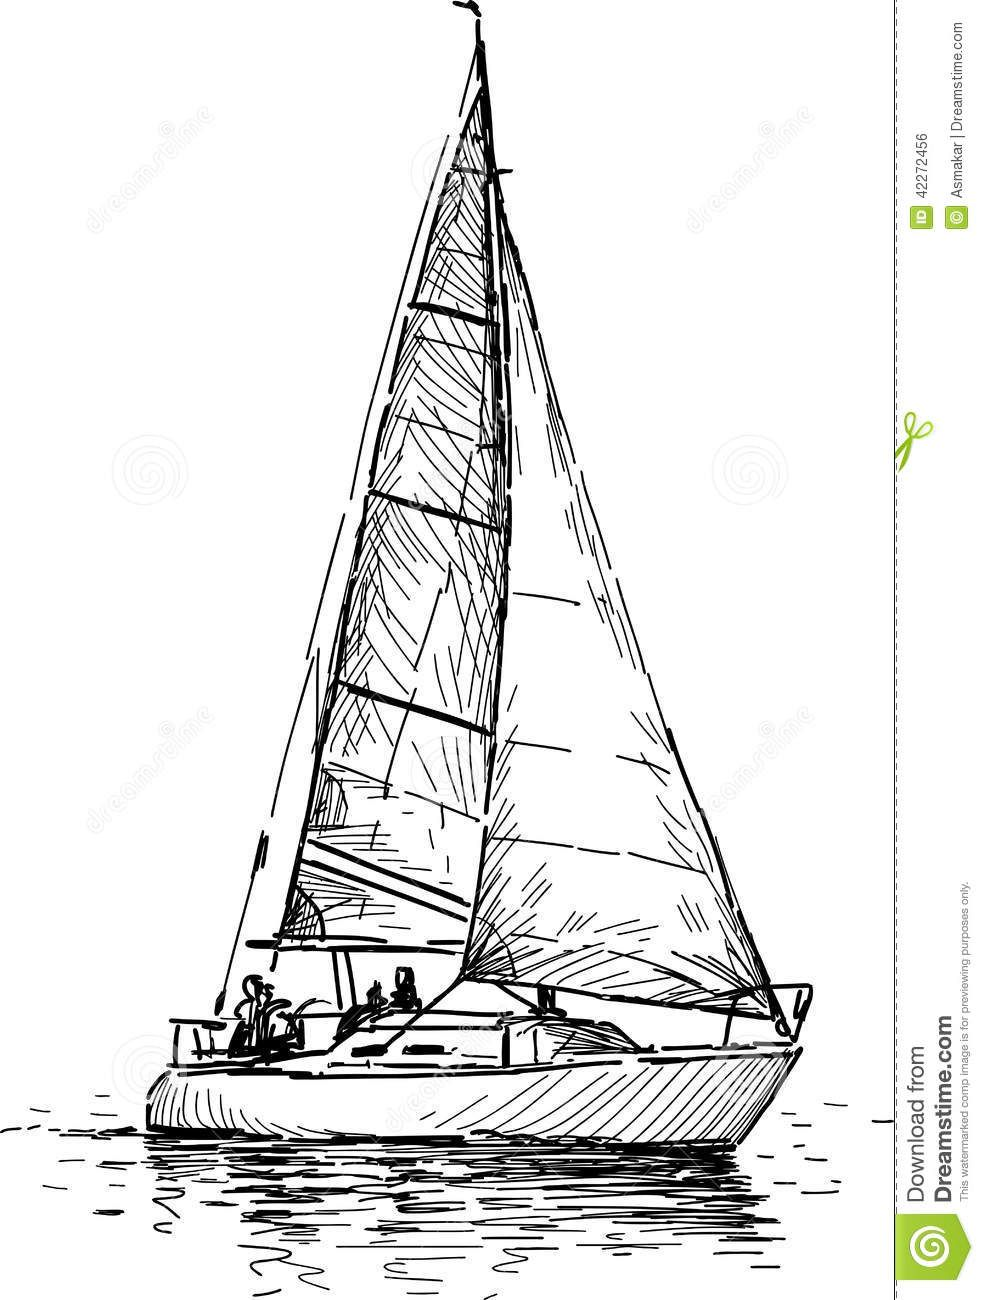 Sailboat Drawing Sketch Sailboat Drawing Sketch Sailing Yacht